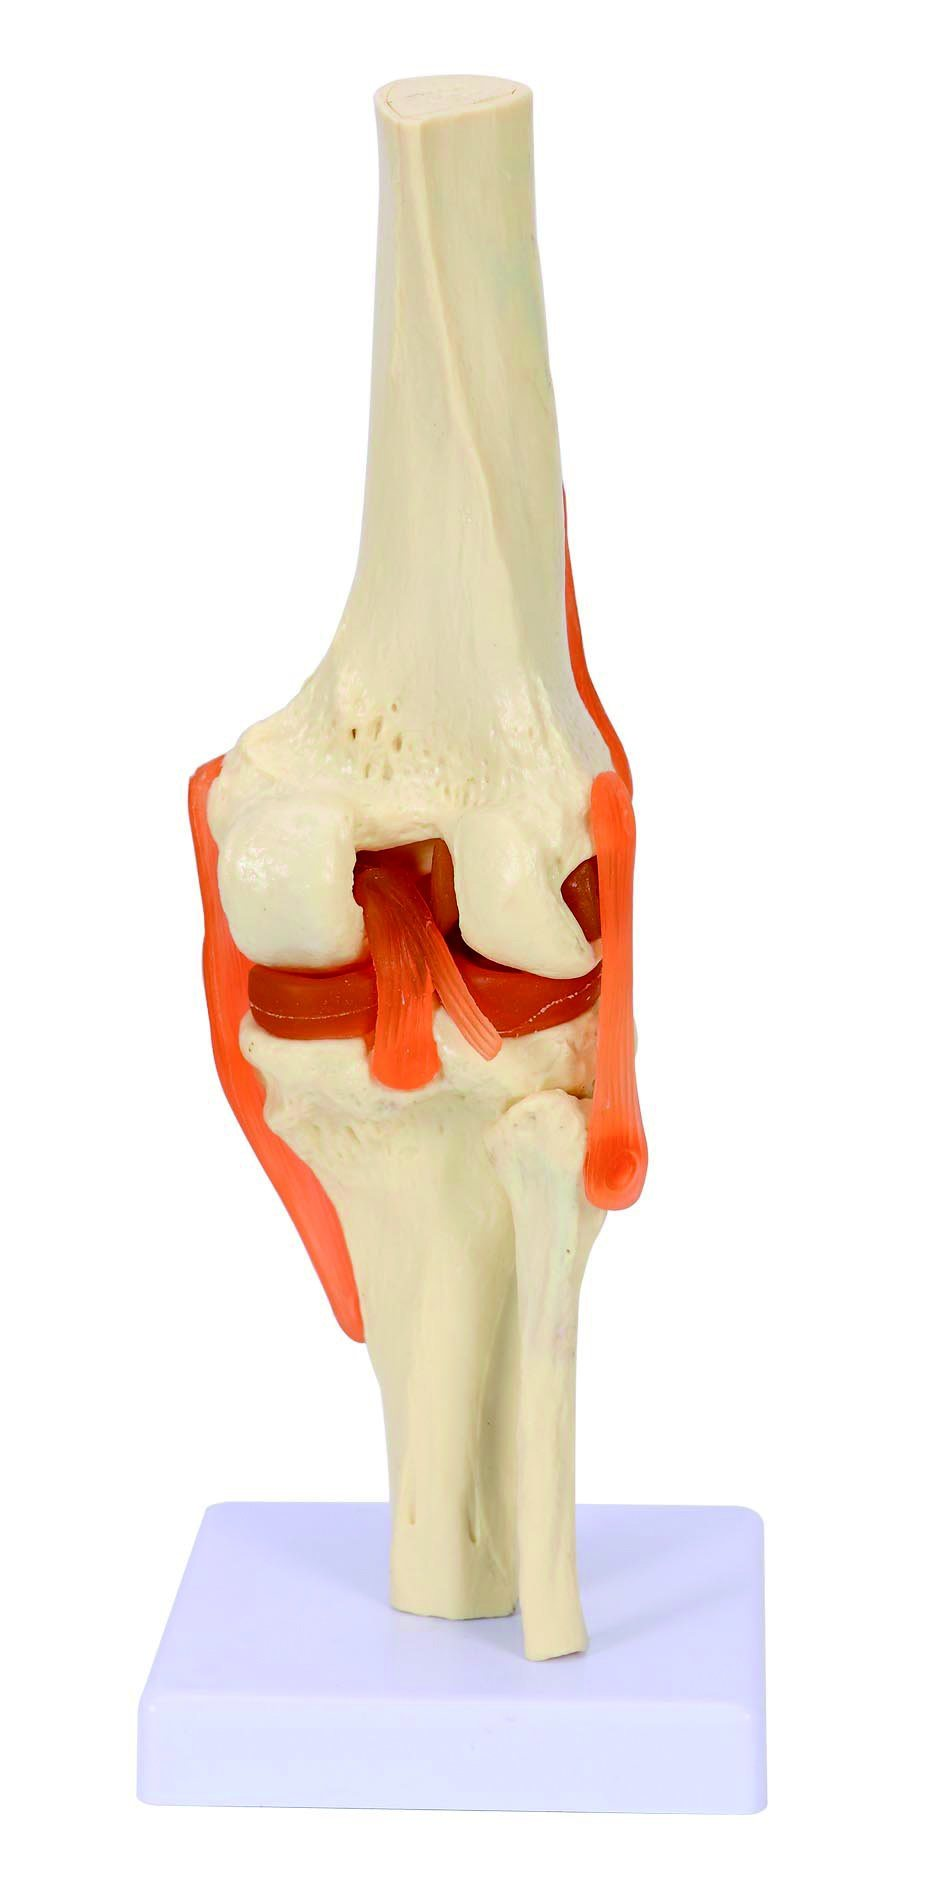 PVC Life-Size Knee Joint Model for Medical Teaching